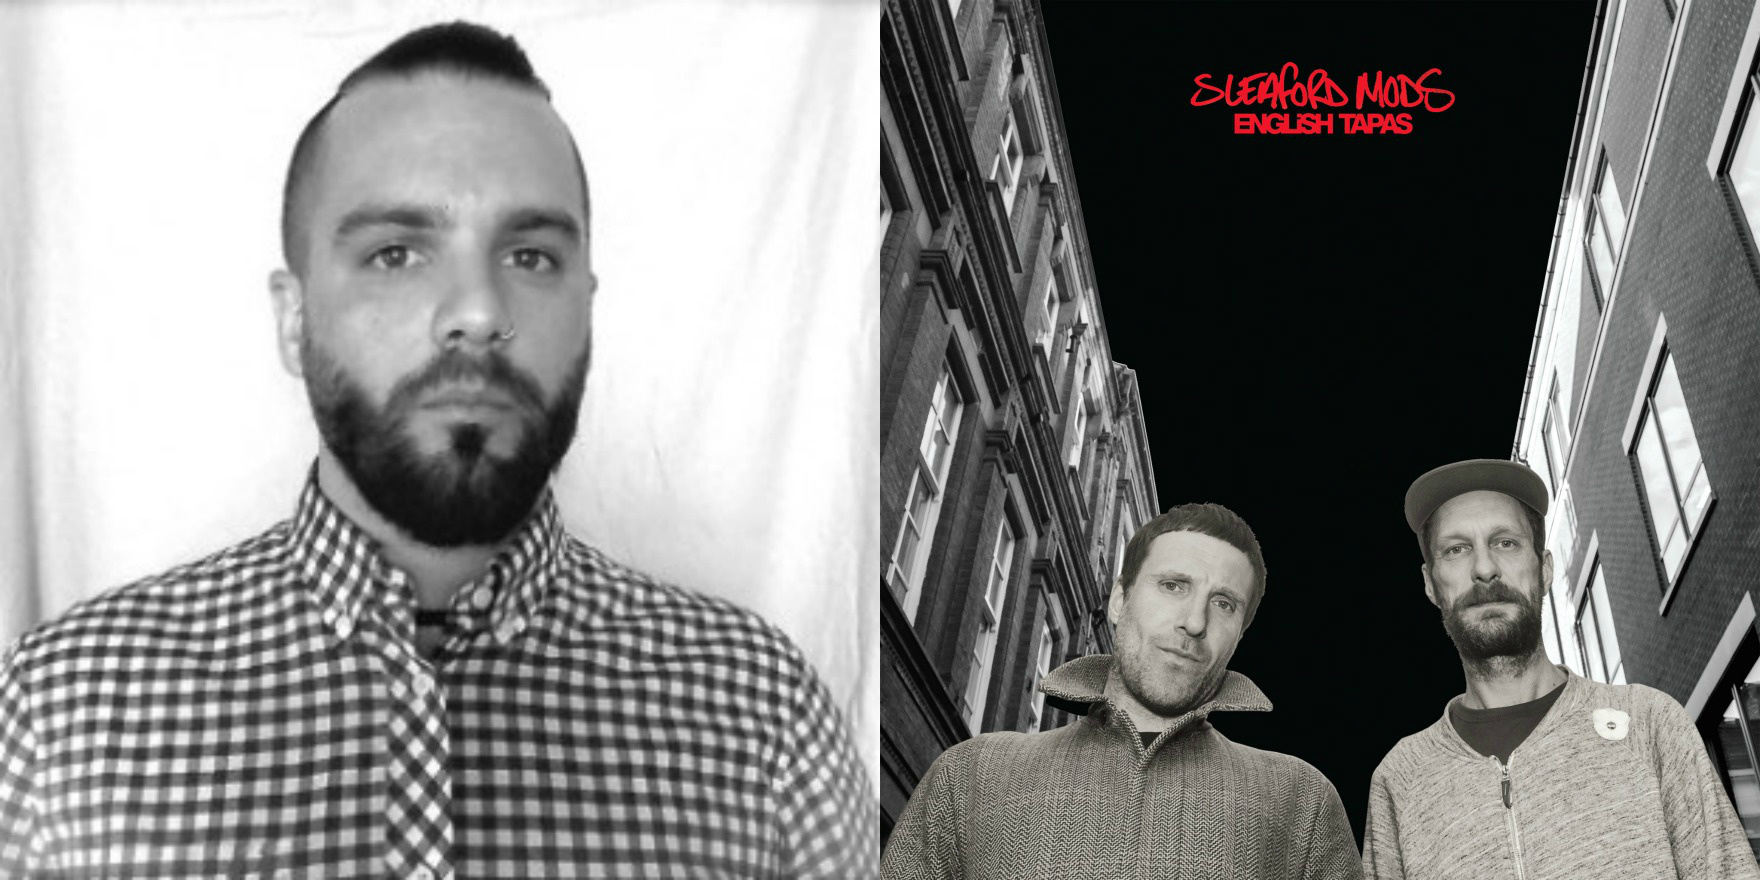 Jesse Leach Felt So Wrong In A Good Way Listening To The Sleaford Mods New Record